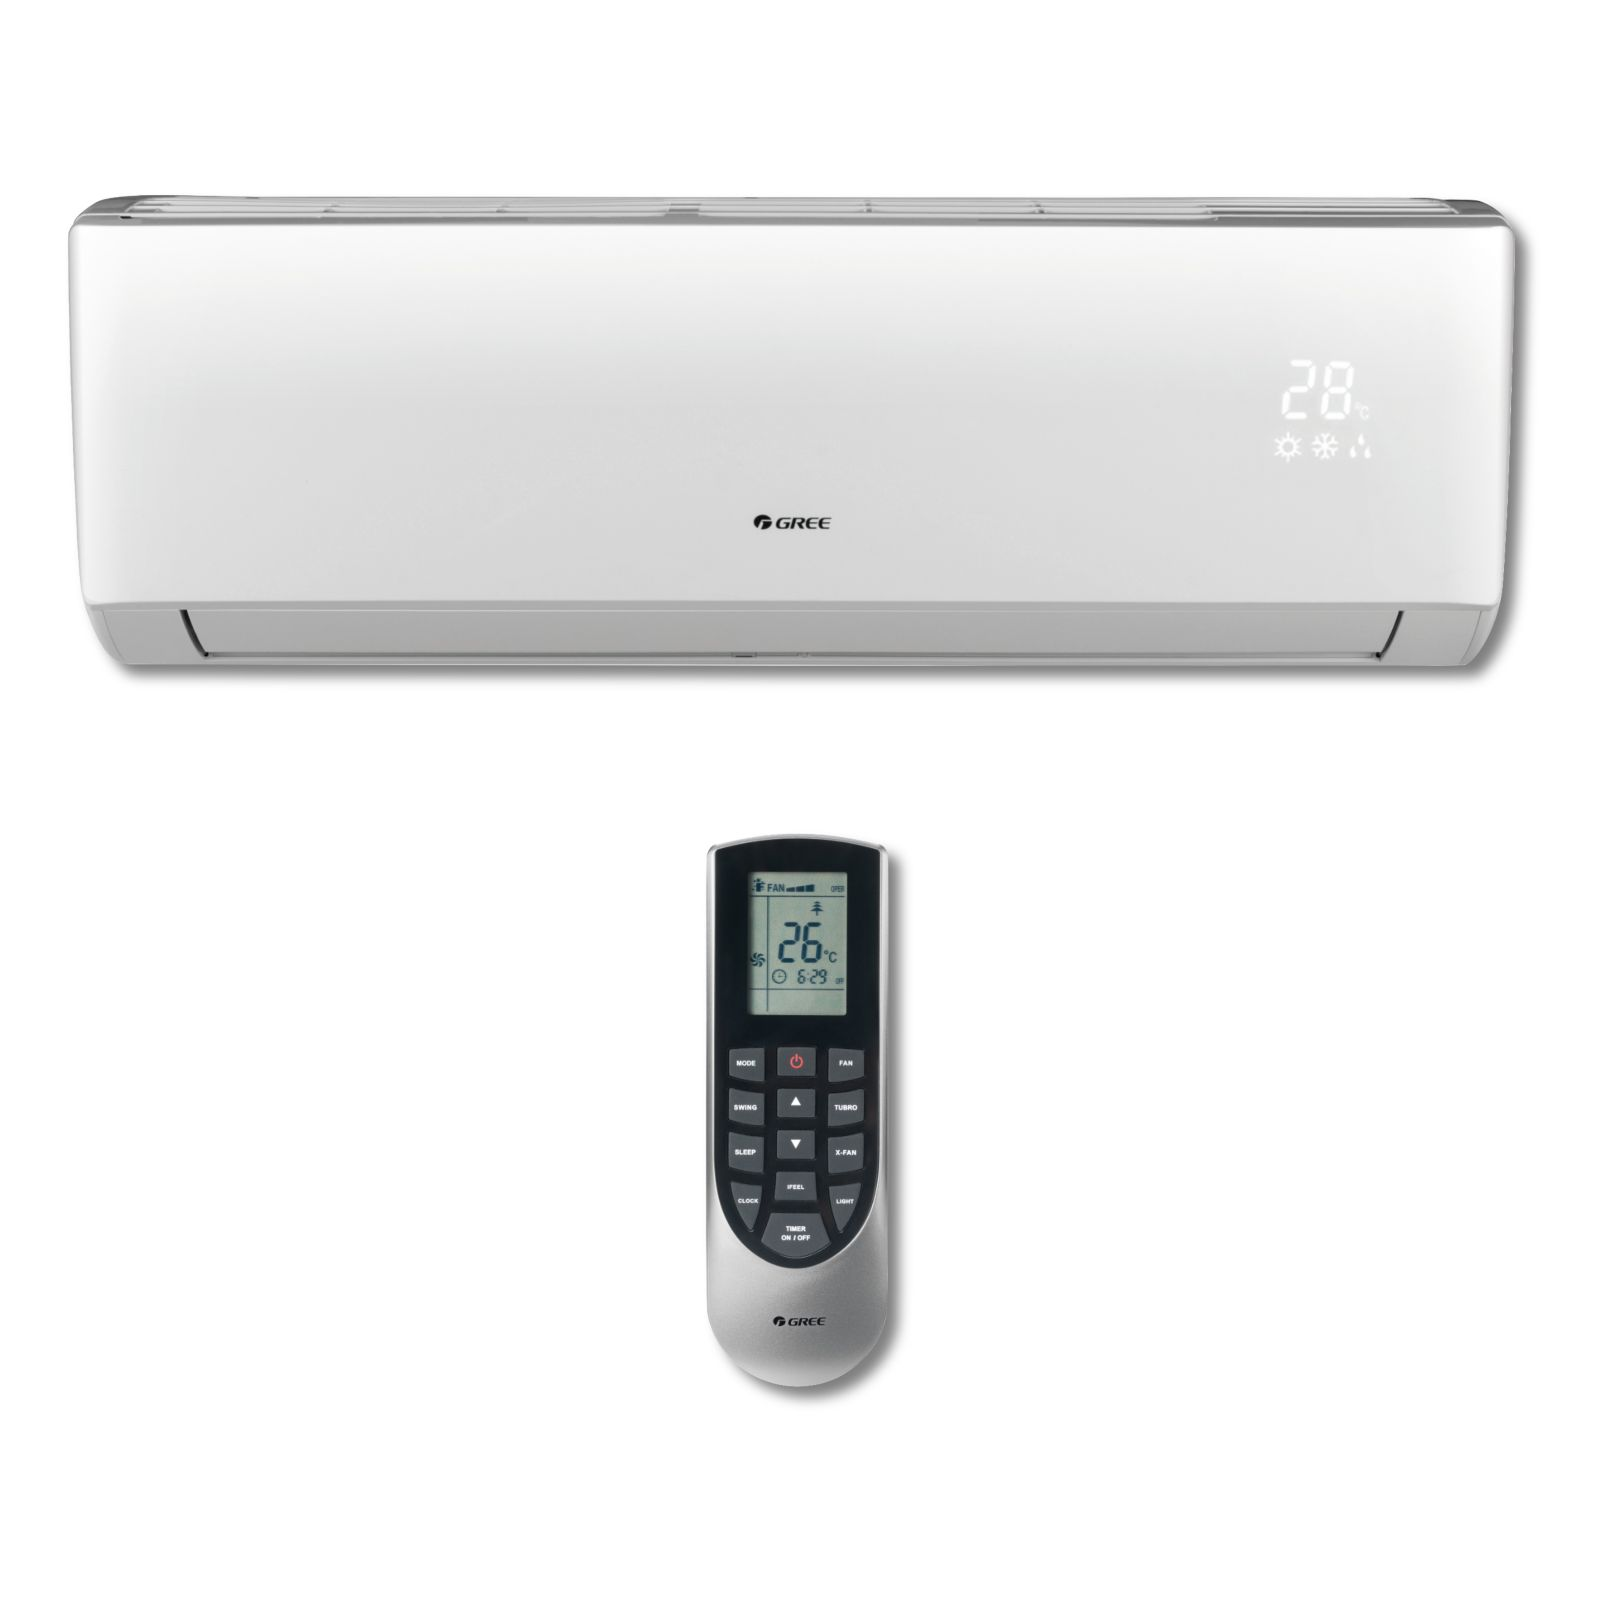 GREE VIR09HP230V1AH - Vireo 9,000 BTU Wall Mounted Inverter Heat Pump Indoor Unit 230V